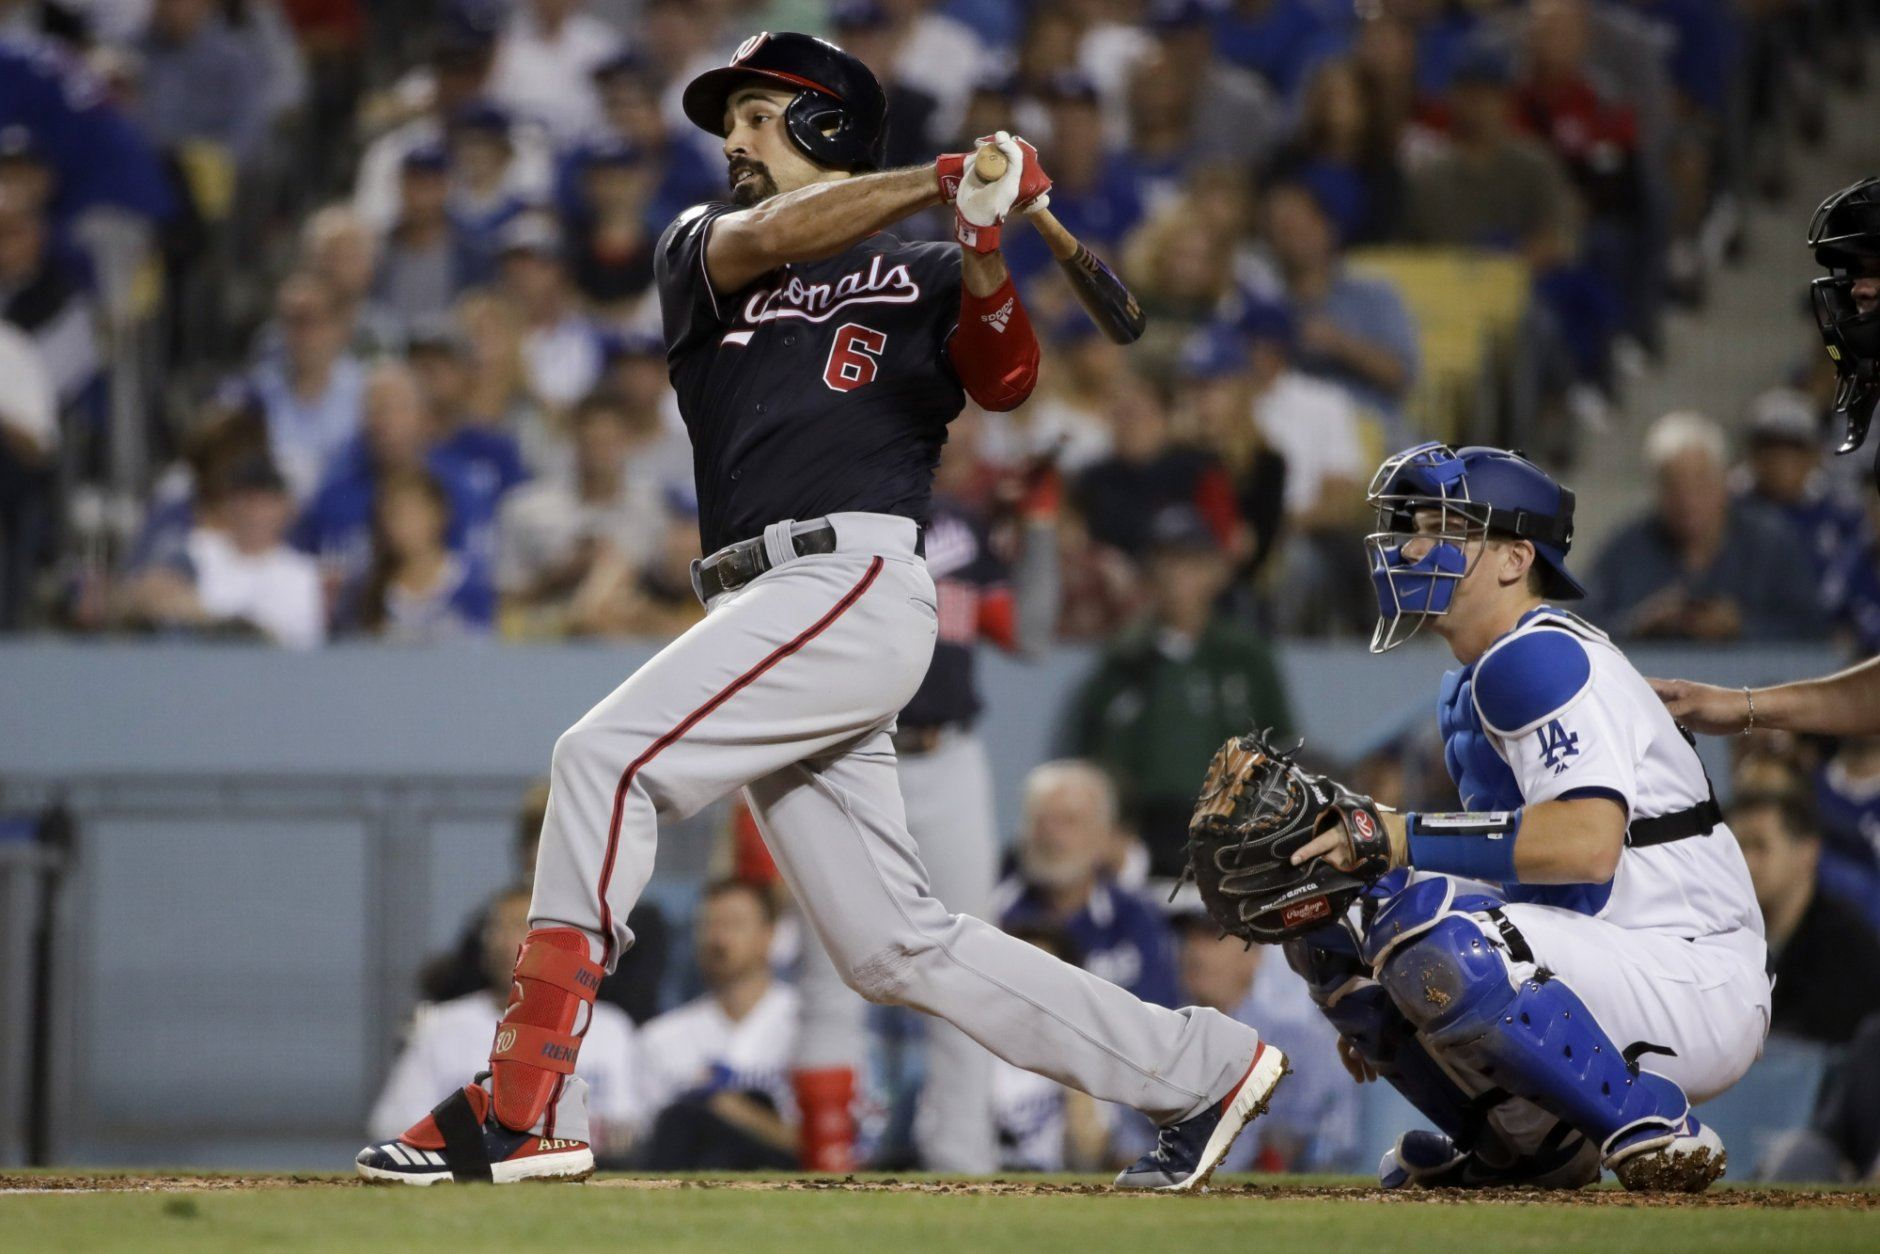 Washington Nationals' Anthony Rendon watches his RBI double against the Los Angeles Dodgers during the second inning in Game 2 of a baseball National League Division Series on Friday, Oct. 4, 2019, in Los Angeles. (AP Photo/Marcio Jose Sanchez)